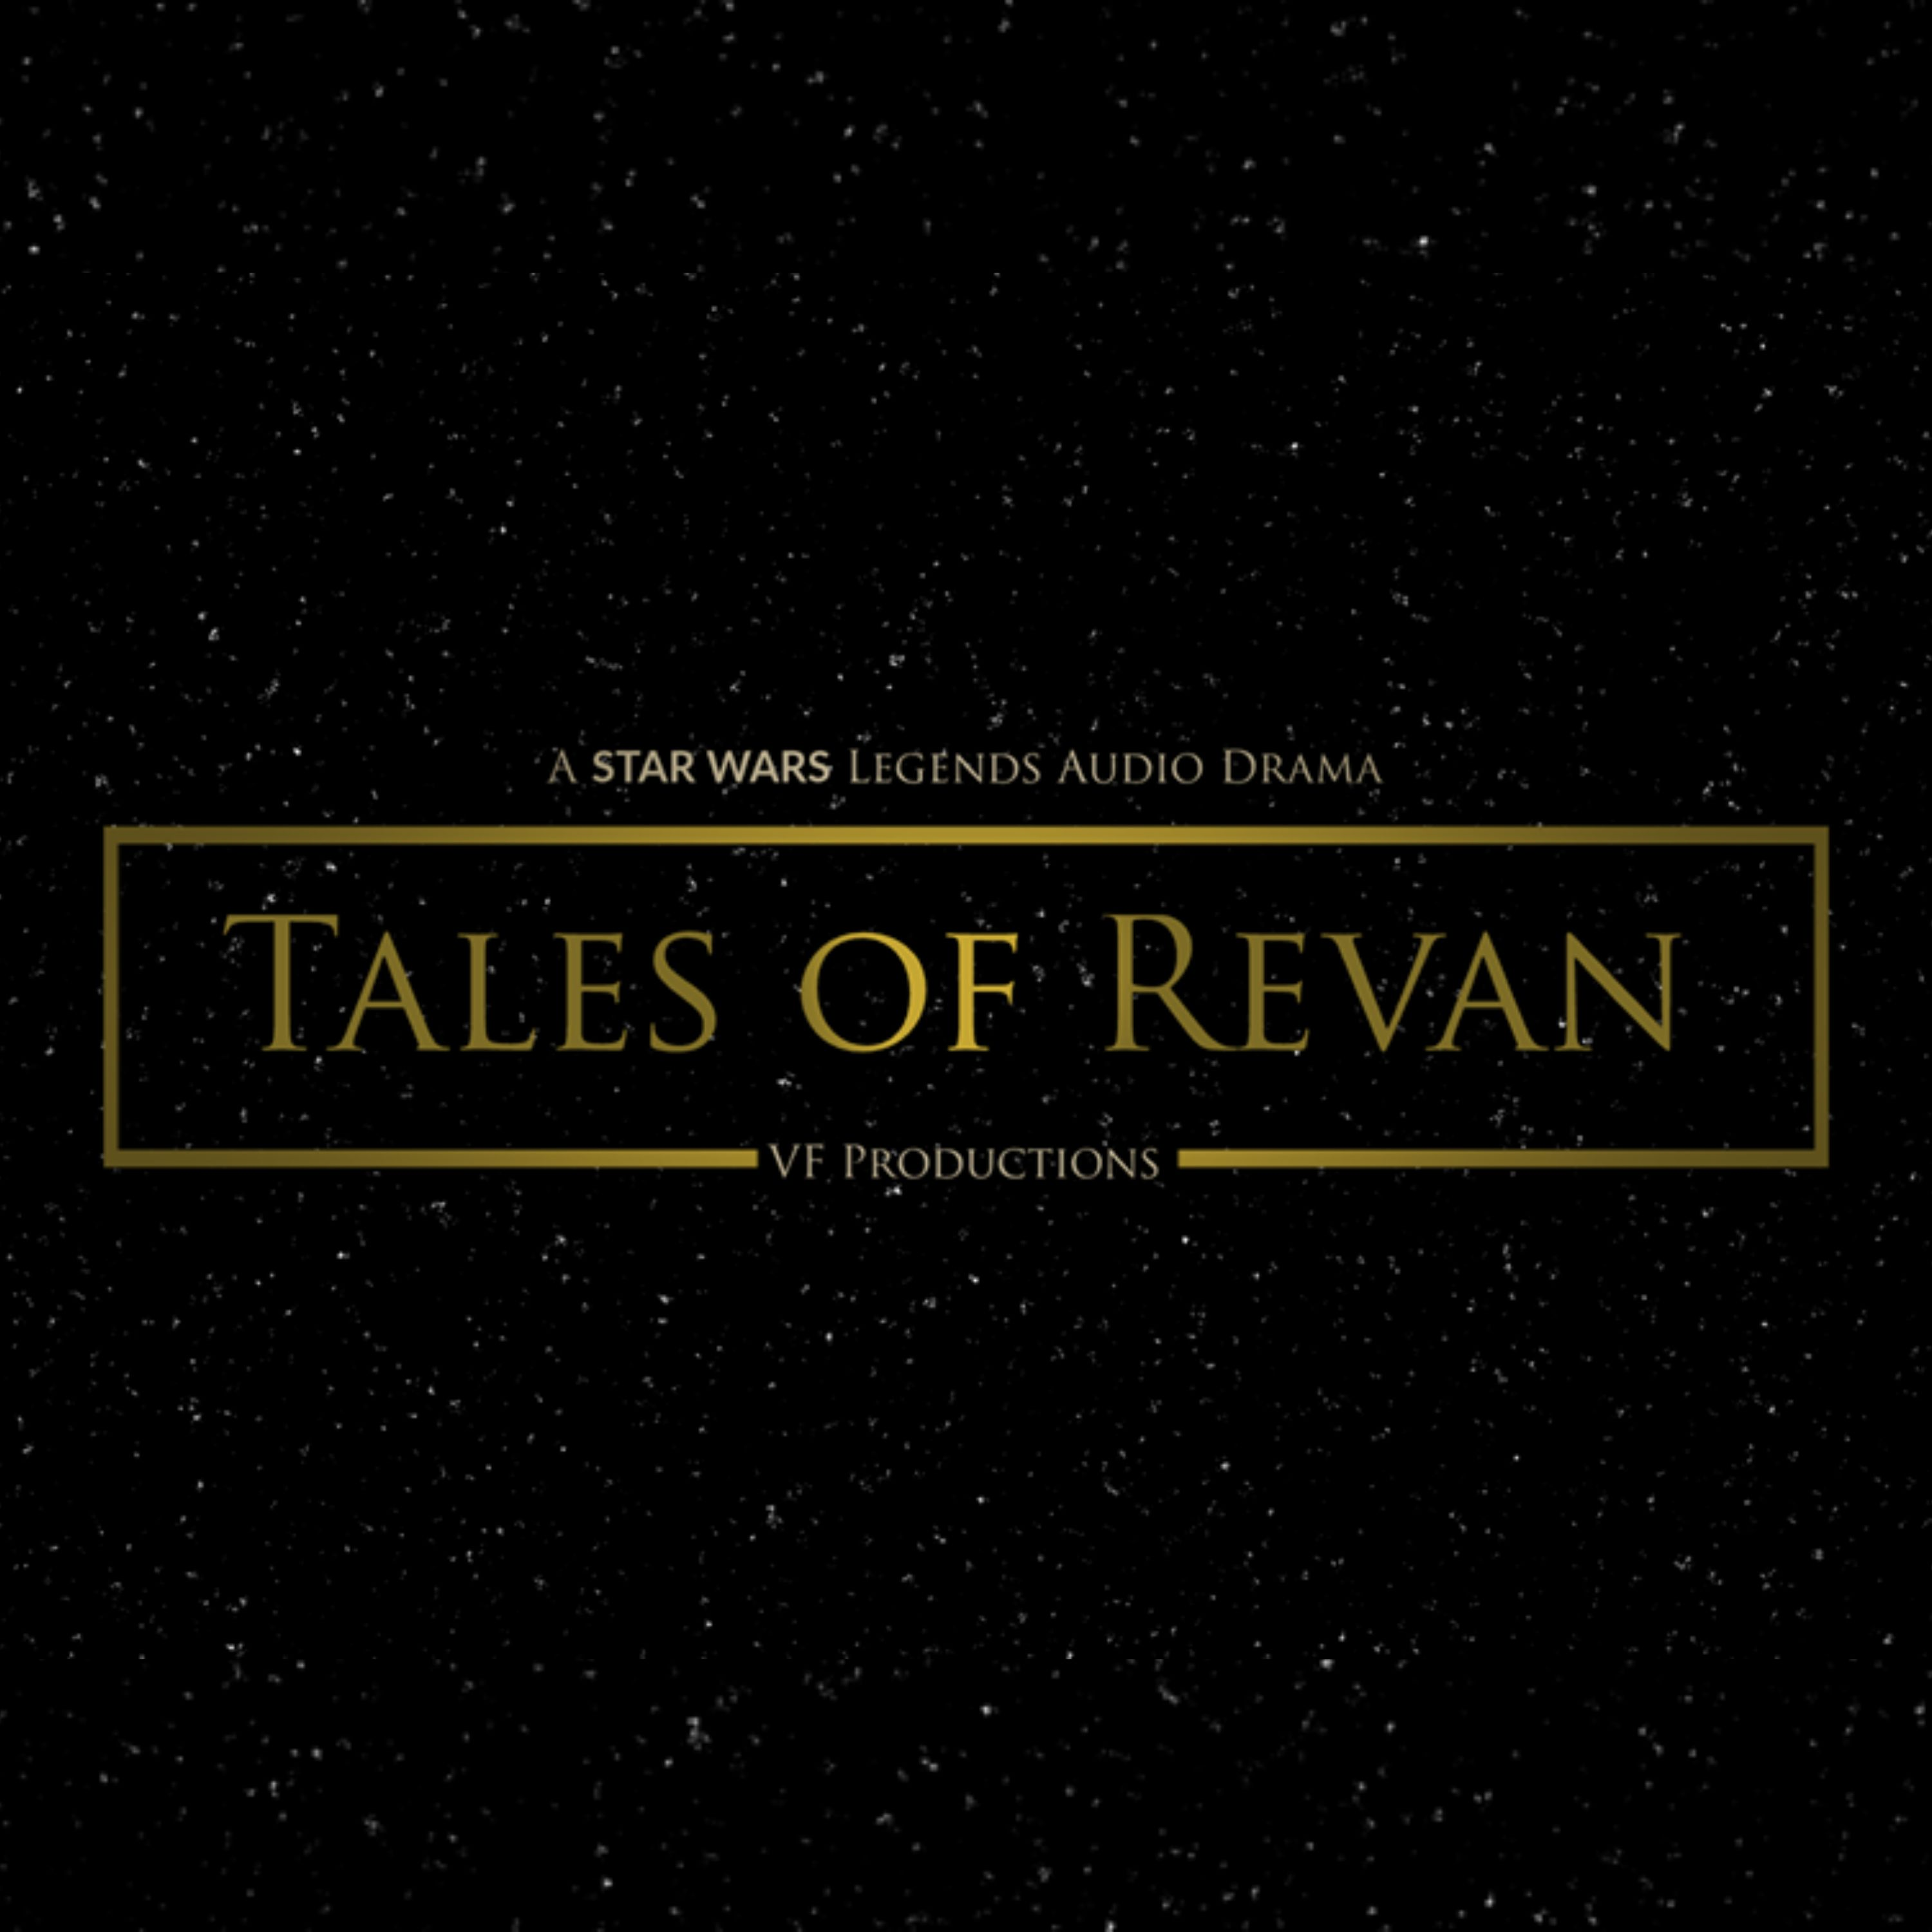 Star Wars Legends: The Audio Drama Series Podcast | Free